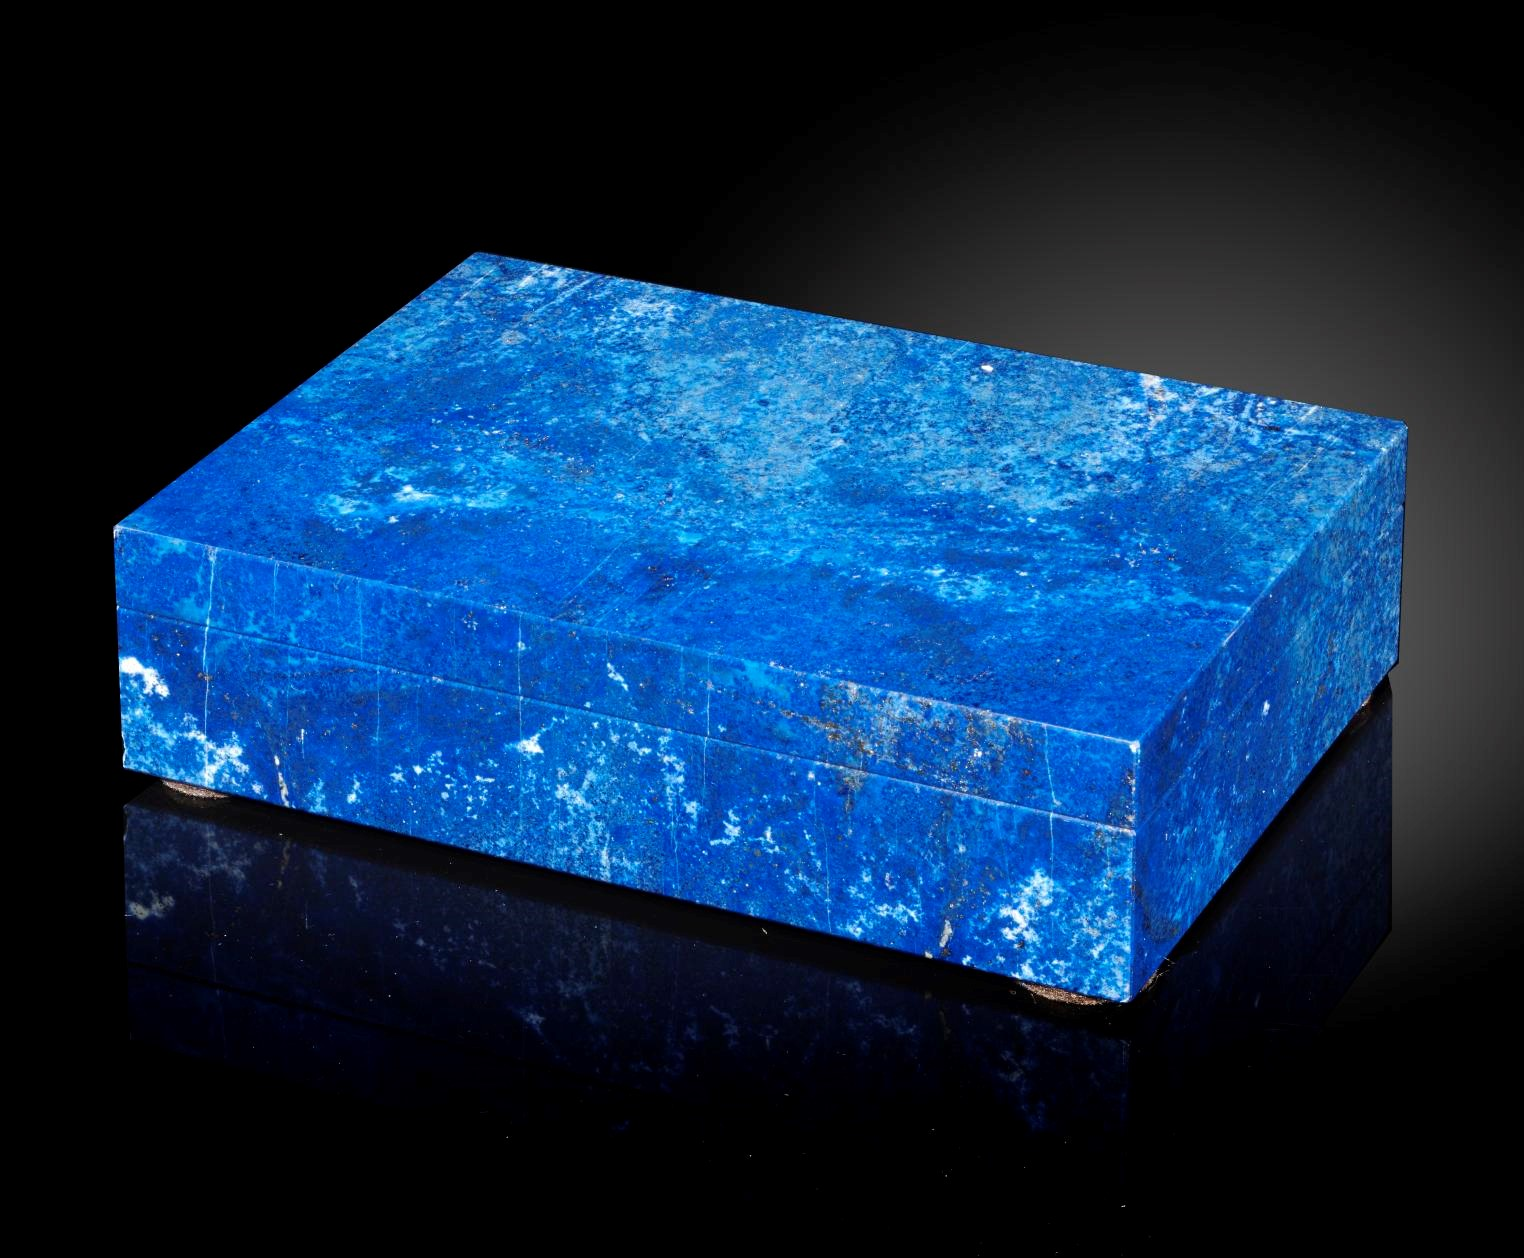 Lot 27 - Interior Design/Minerals: A Madani quality Lapis lazuli veneered box, in fitted case, 16cm by 11cm